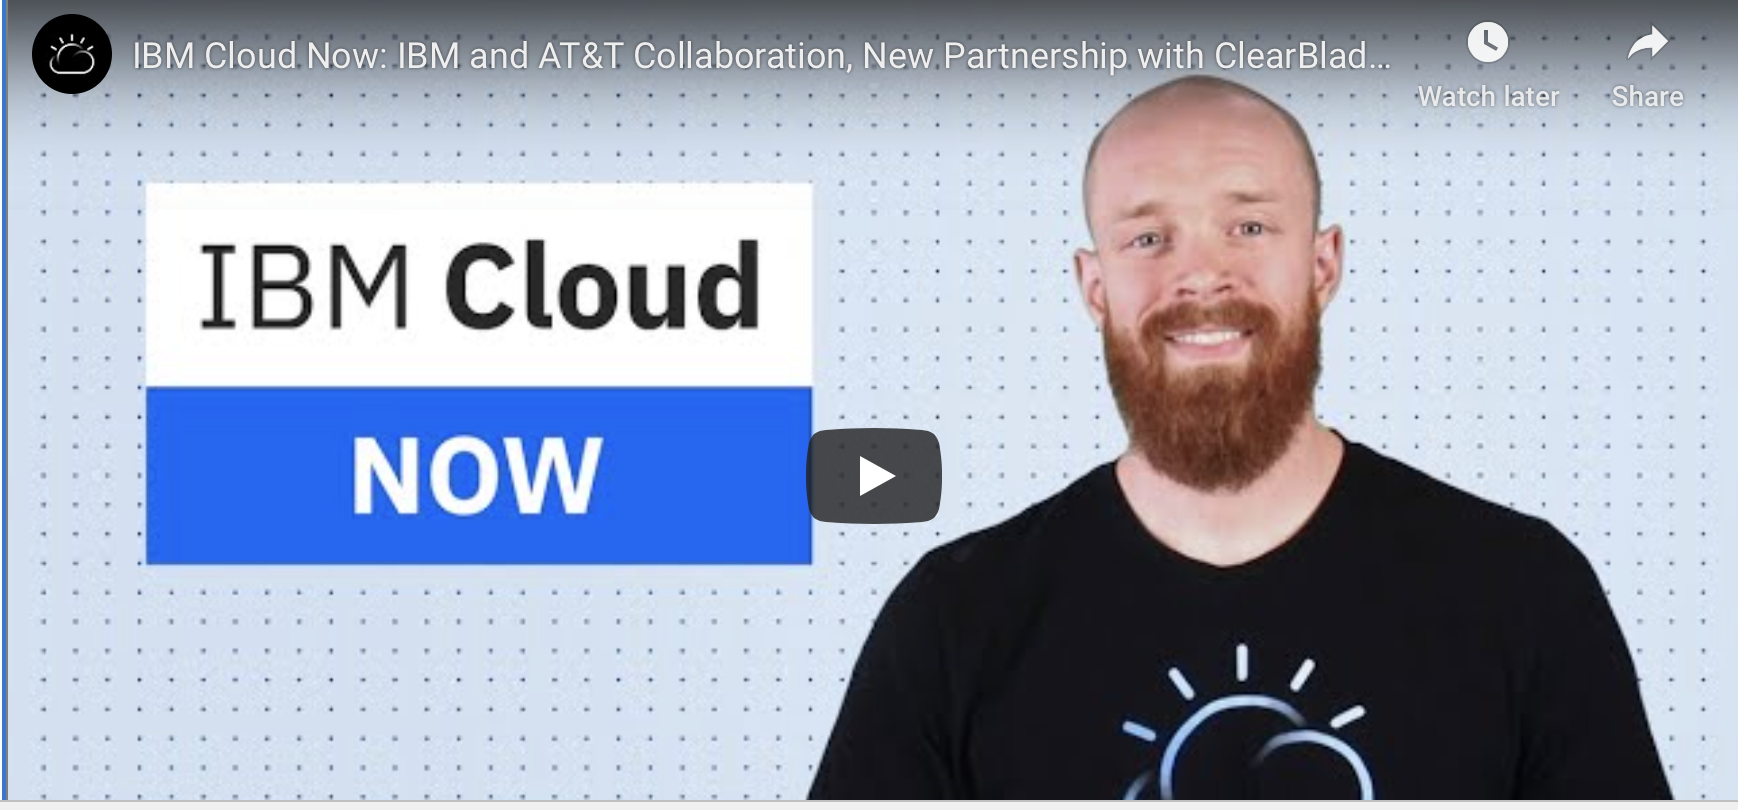 IBM Cloud Now YouTube Video thumbnail